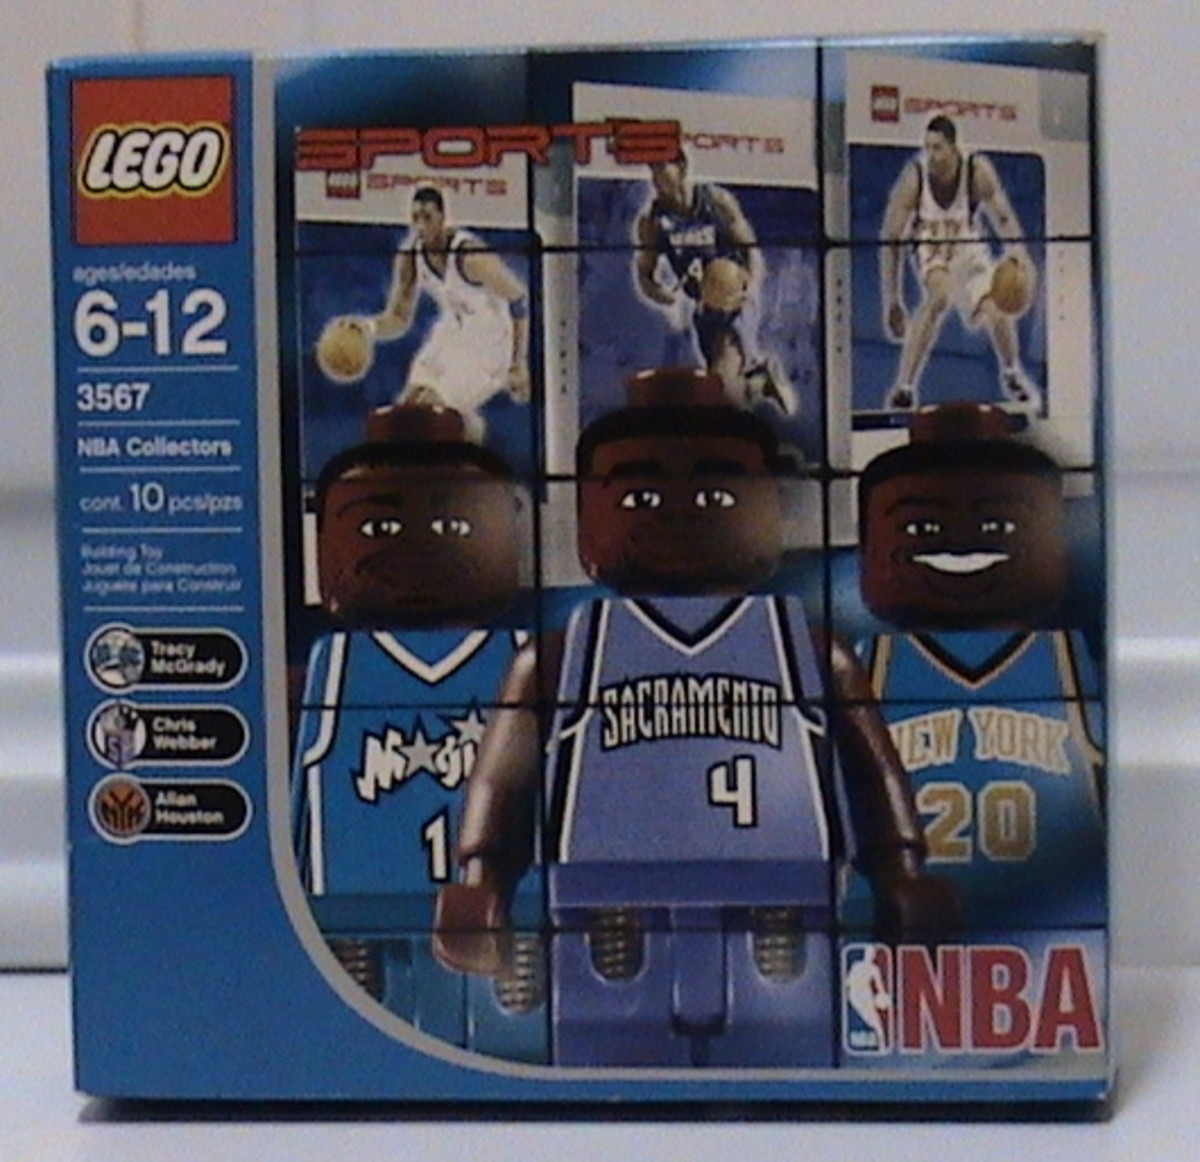 NBA Collector Set #8 in its box